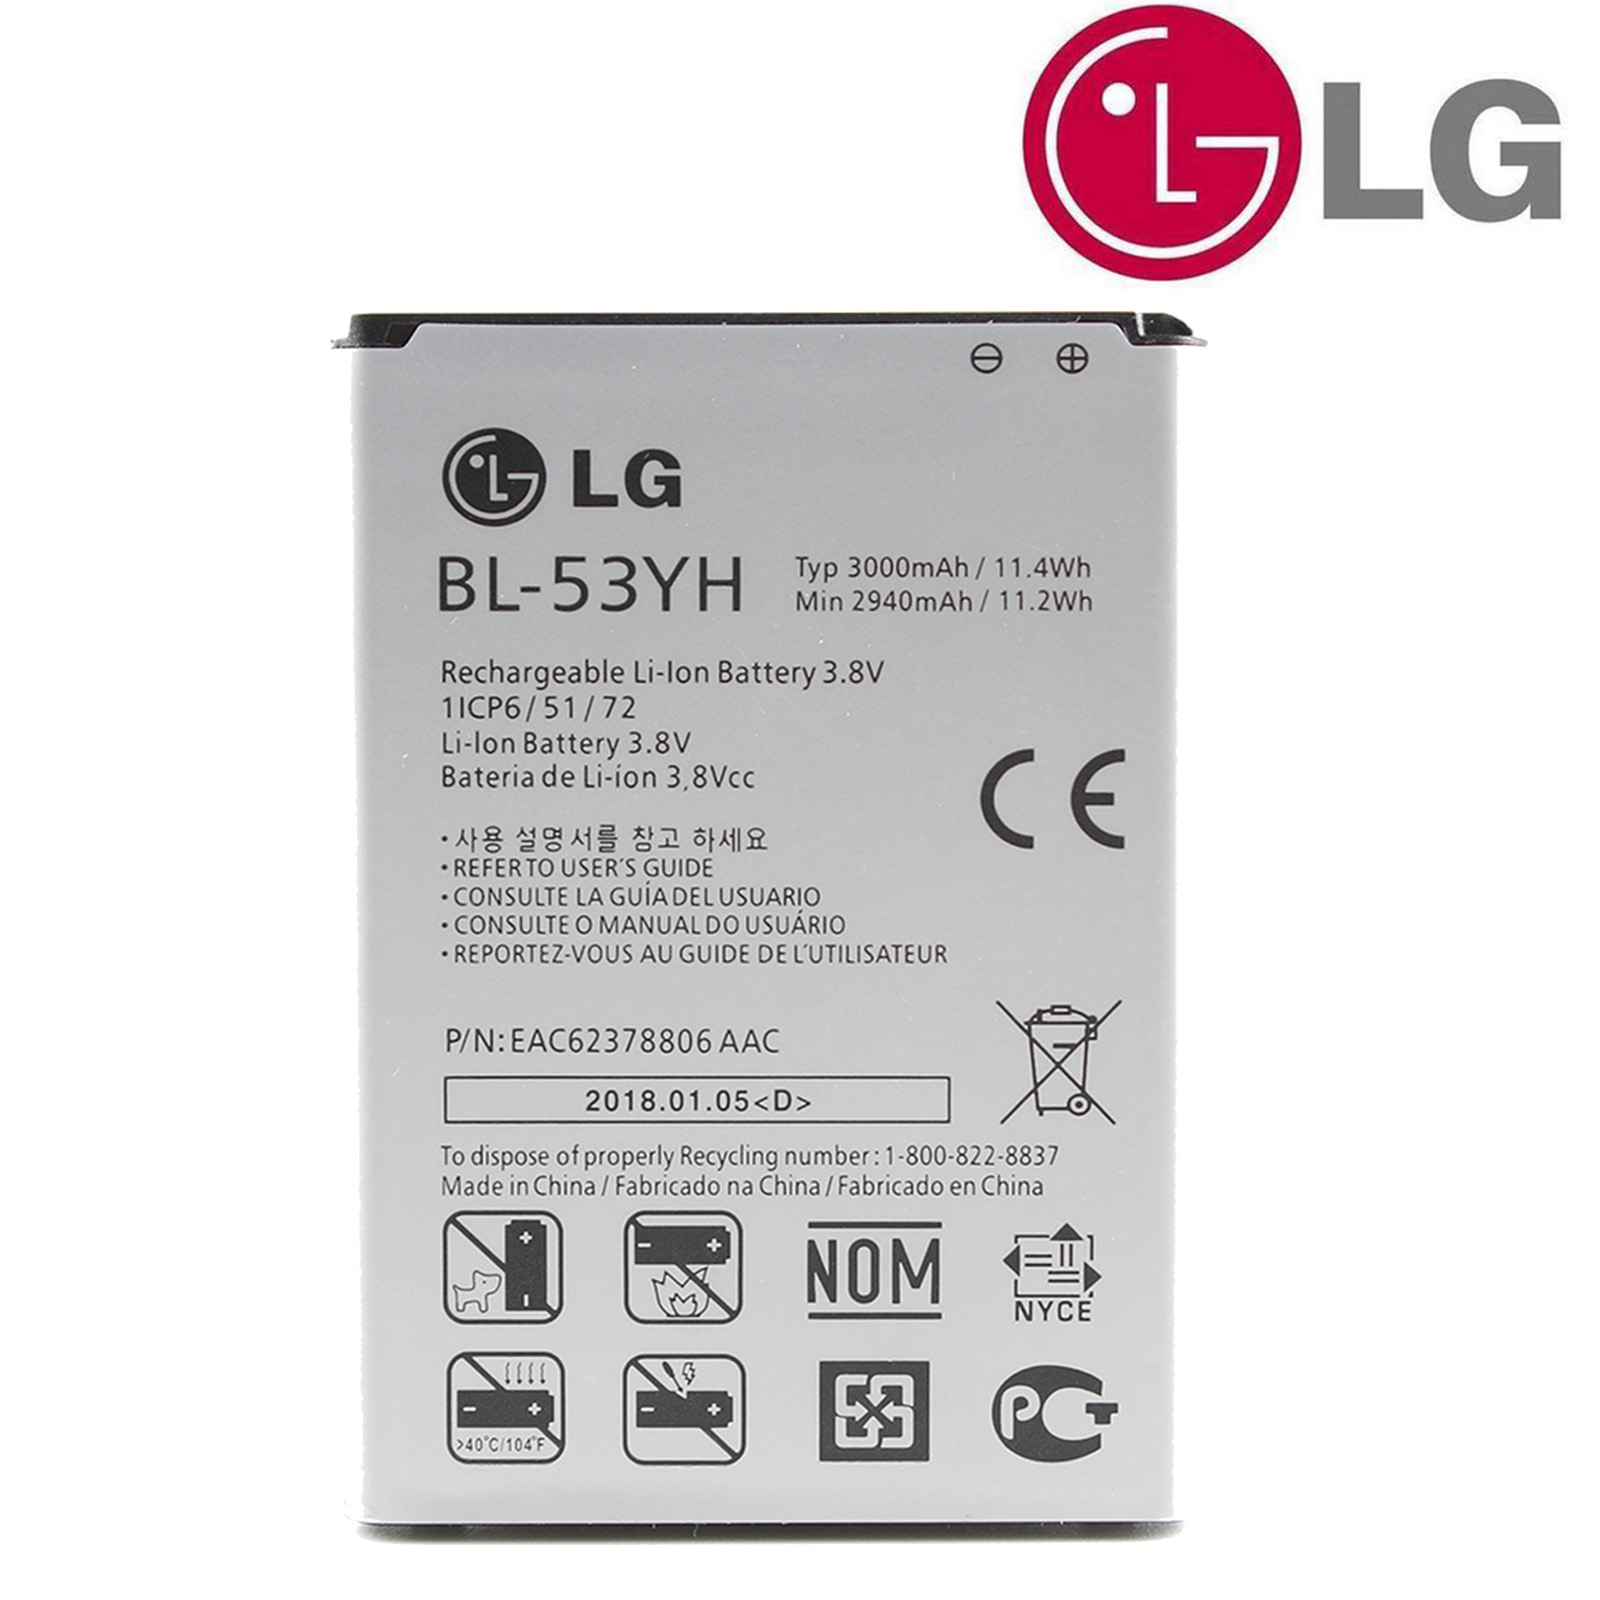 Details about Original OEM LG BL-53YH Battery For LG G3 Li-ion Cell Phone 3.8V 3000mAh +Tools